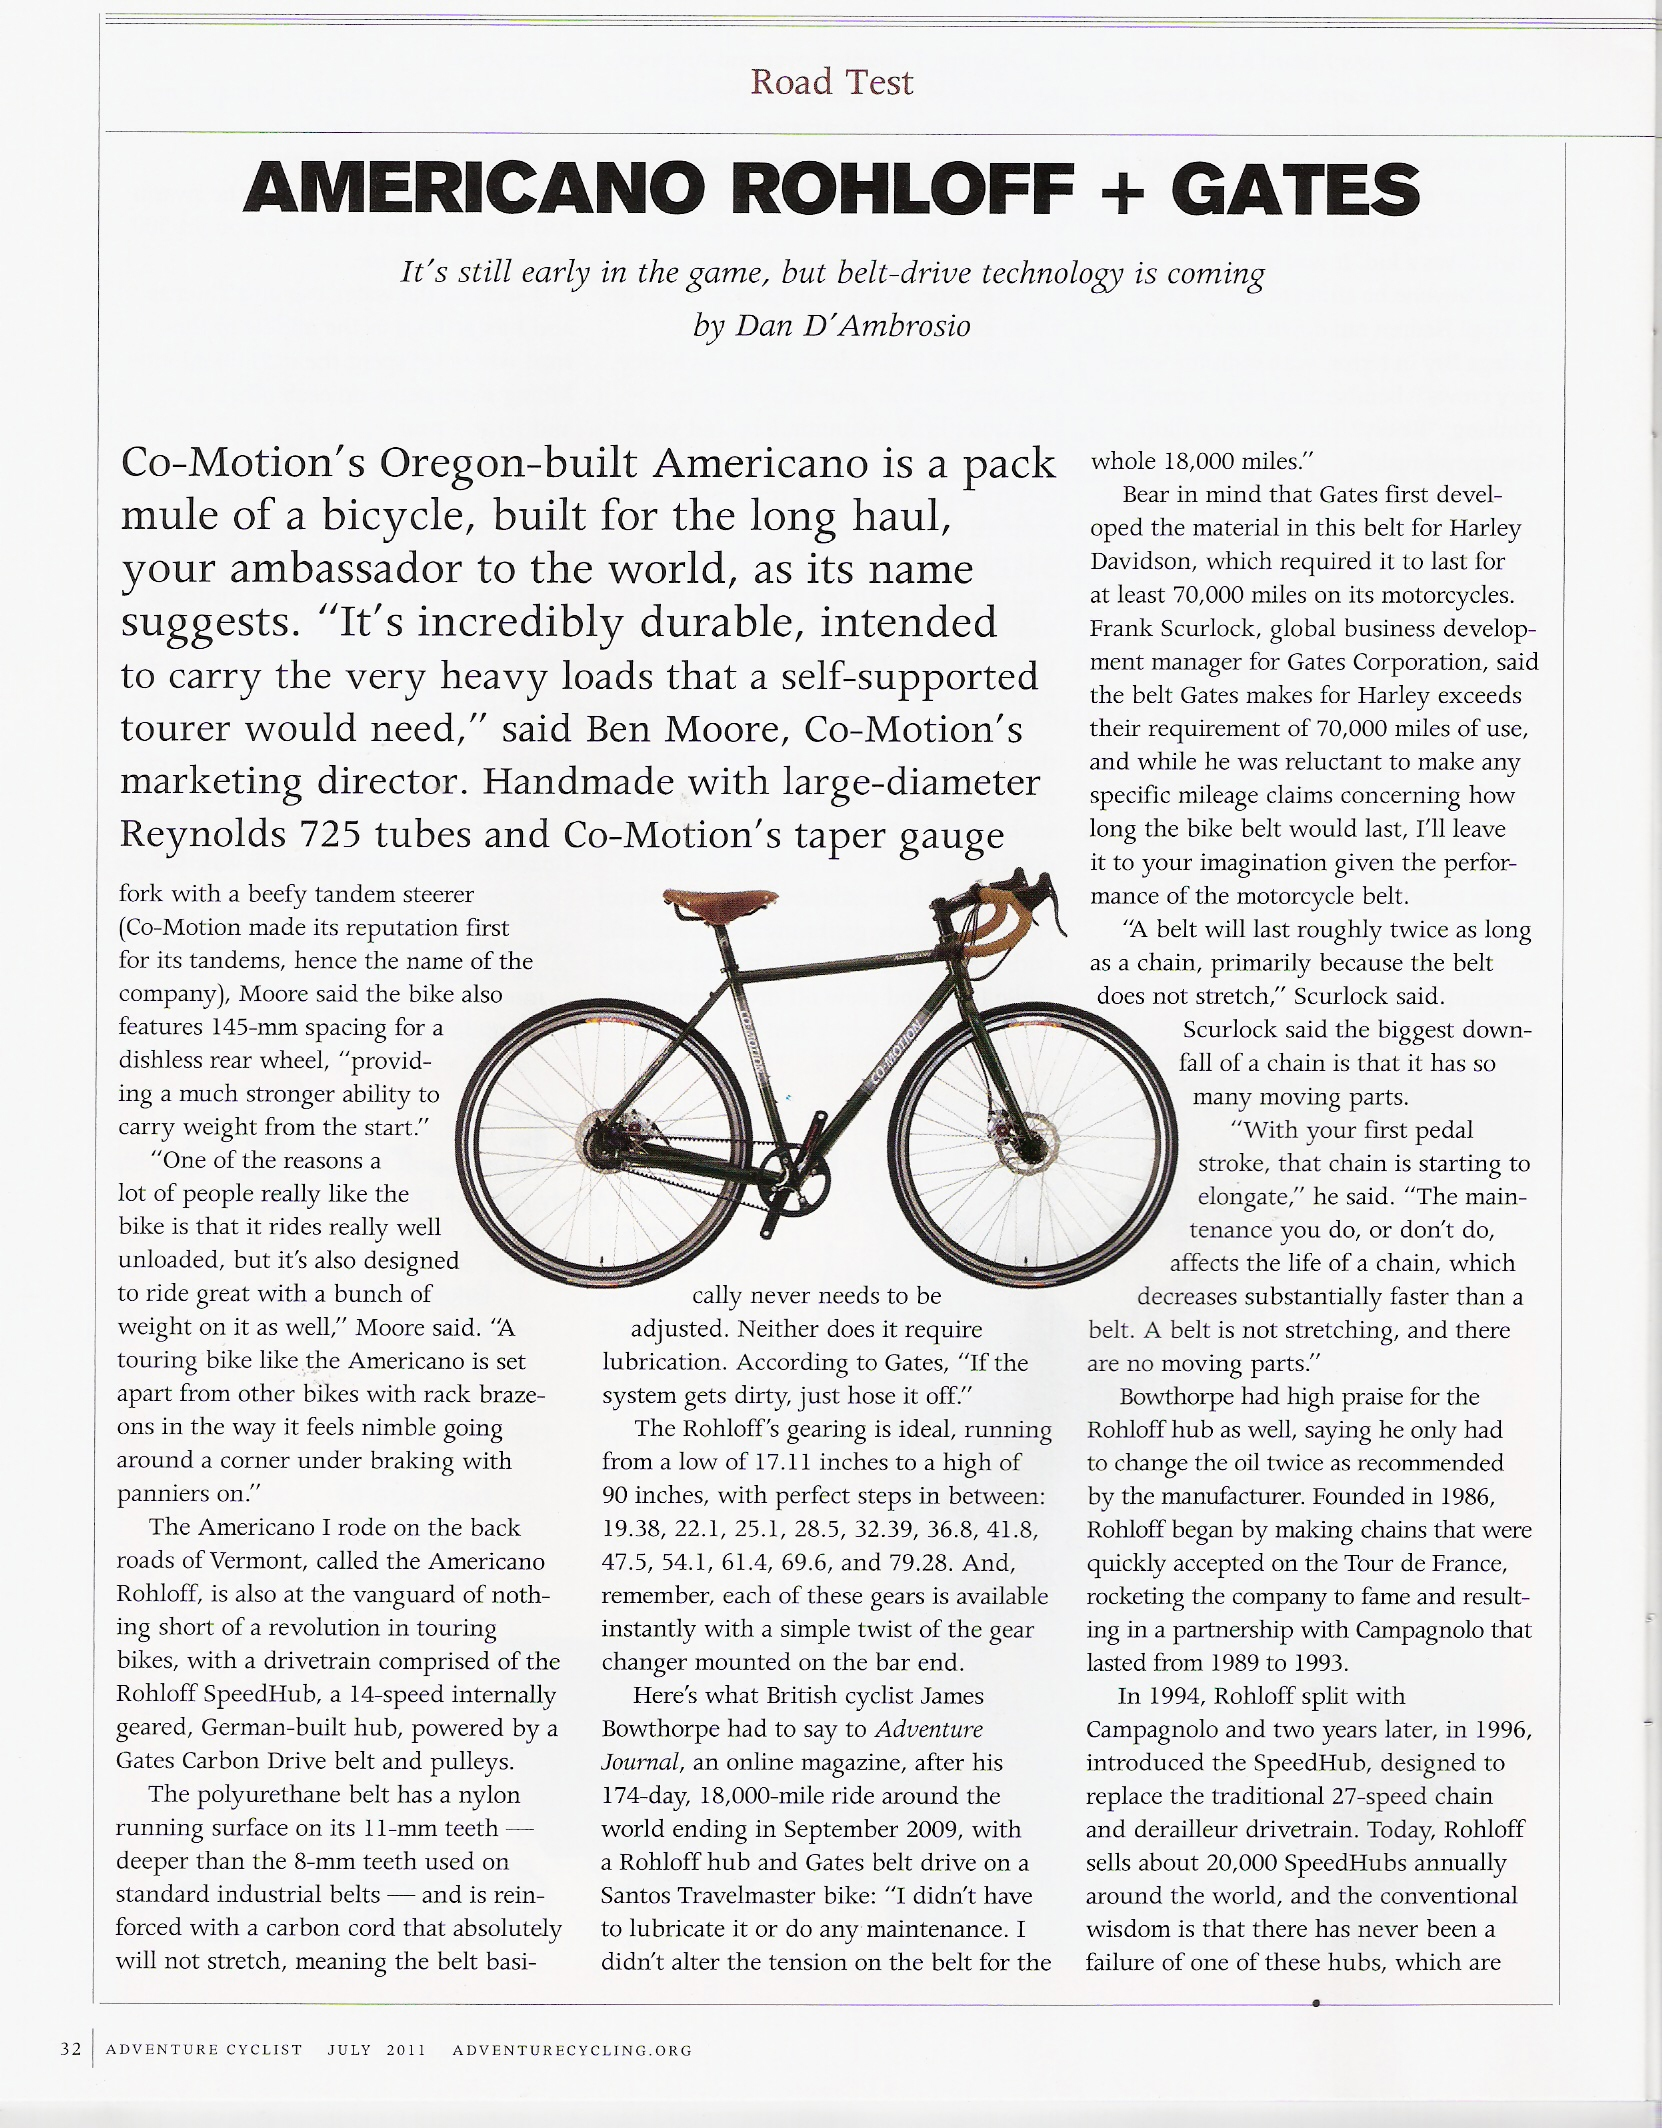 The Co-Motion Americano Rohloff bike with Gates Carbon Drive in Adventure Cyclist Magazine.